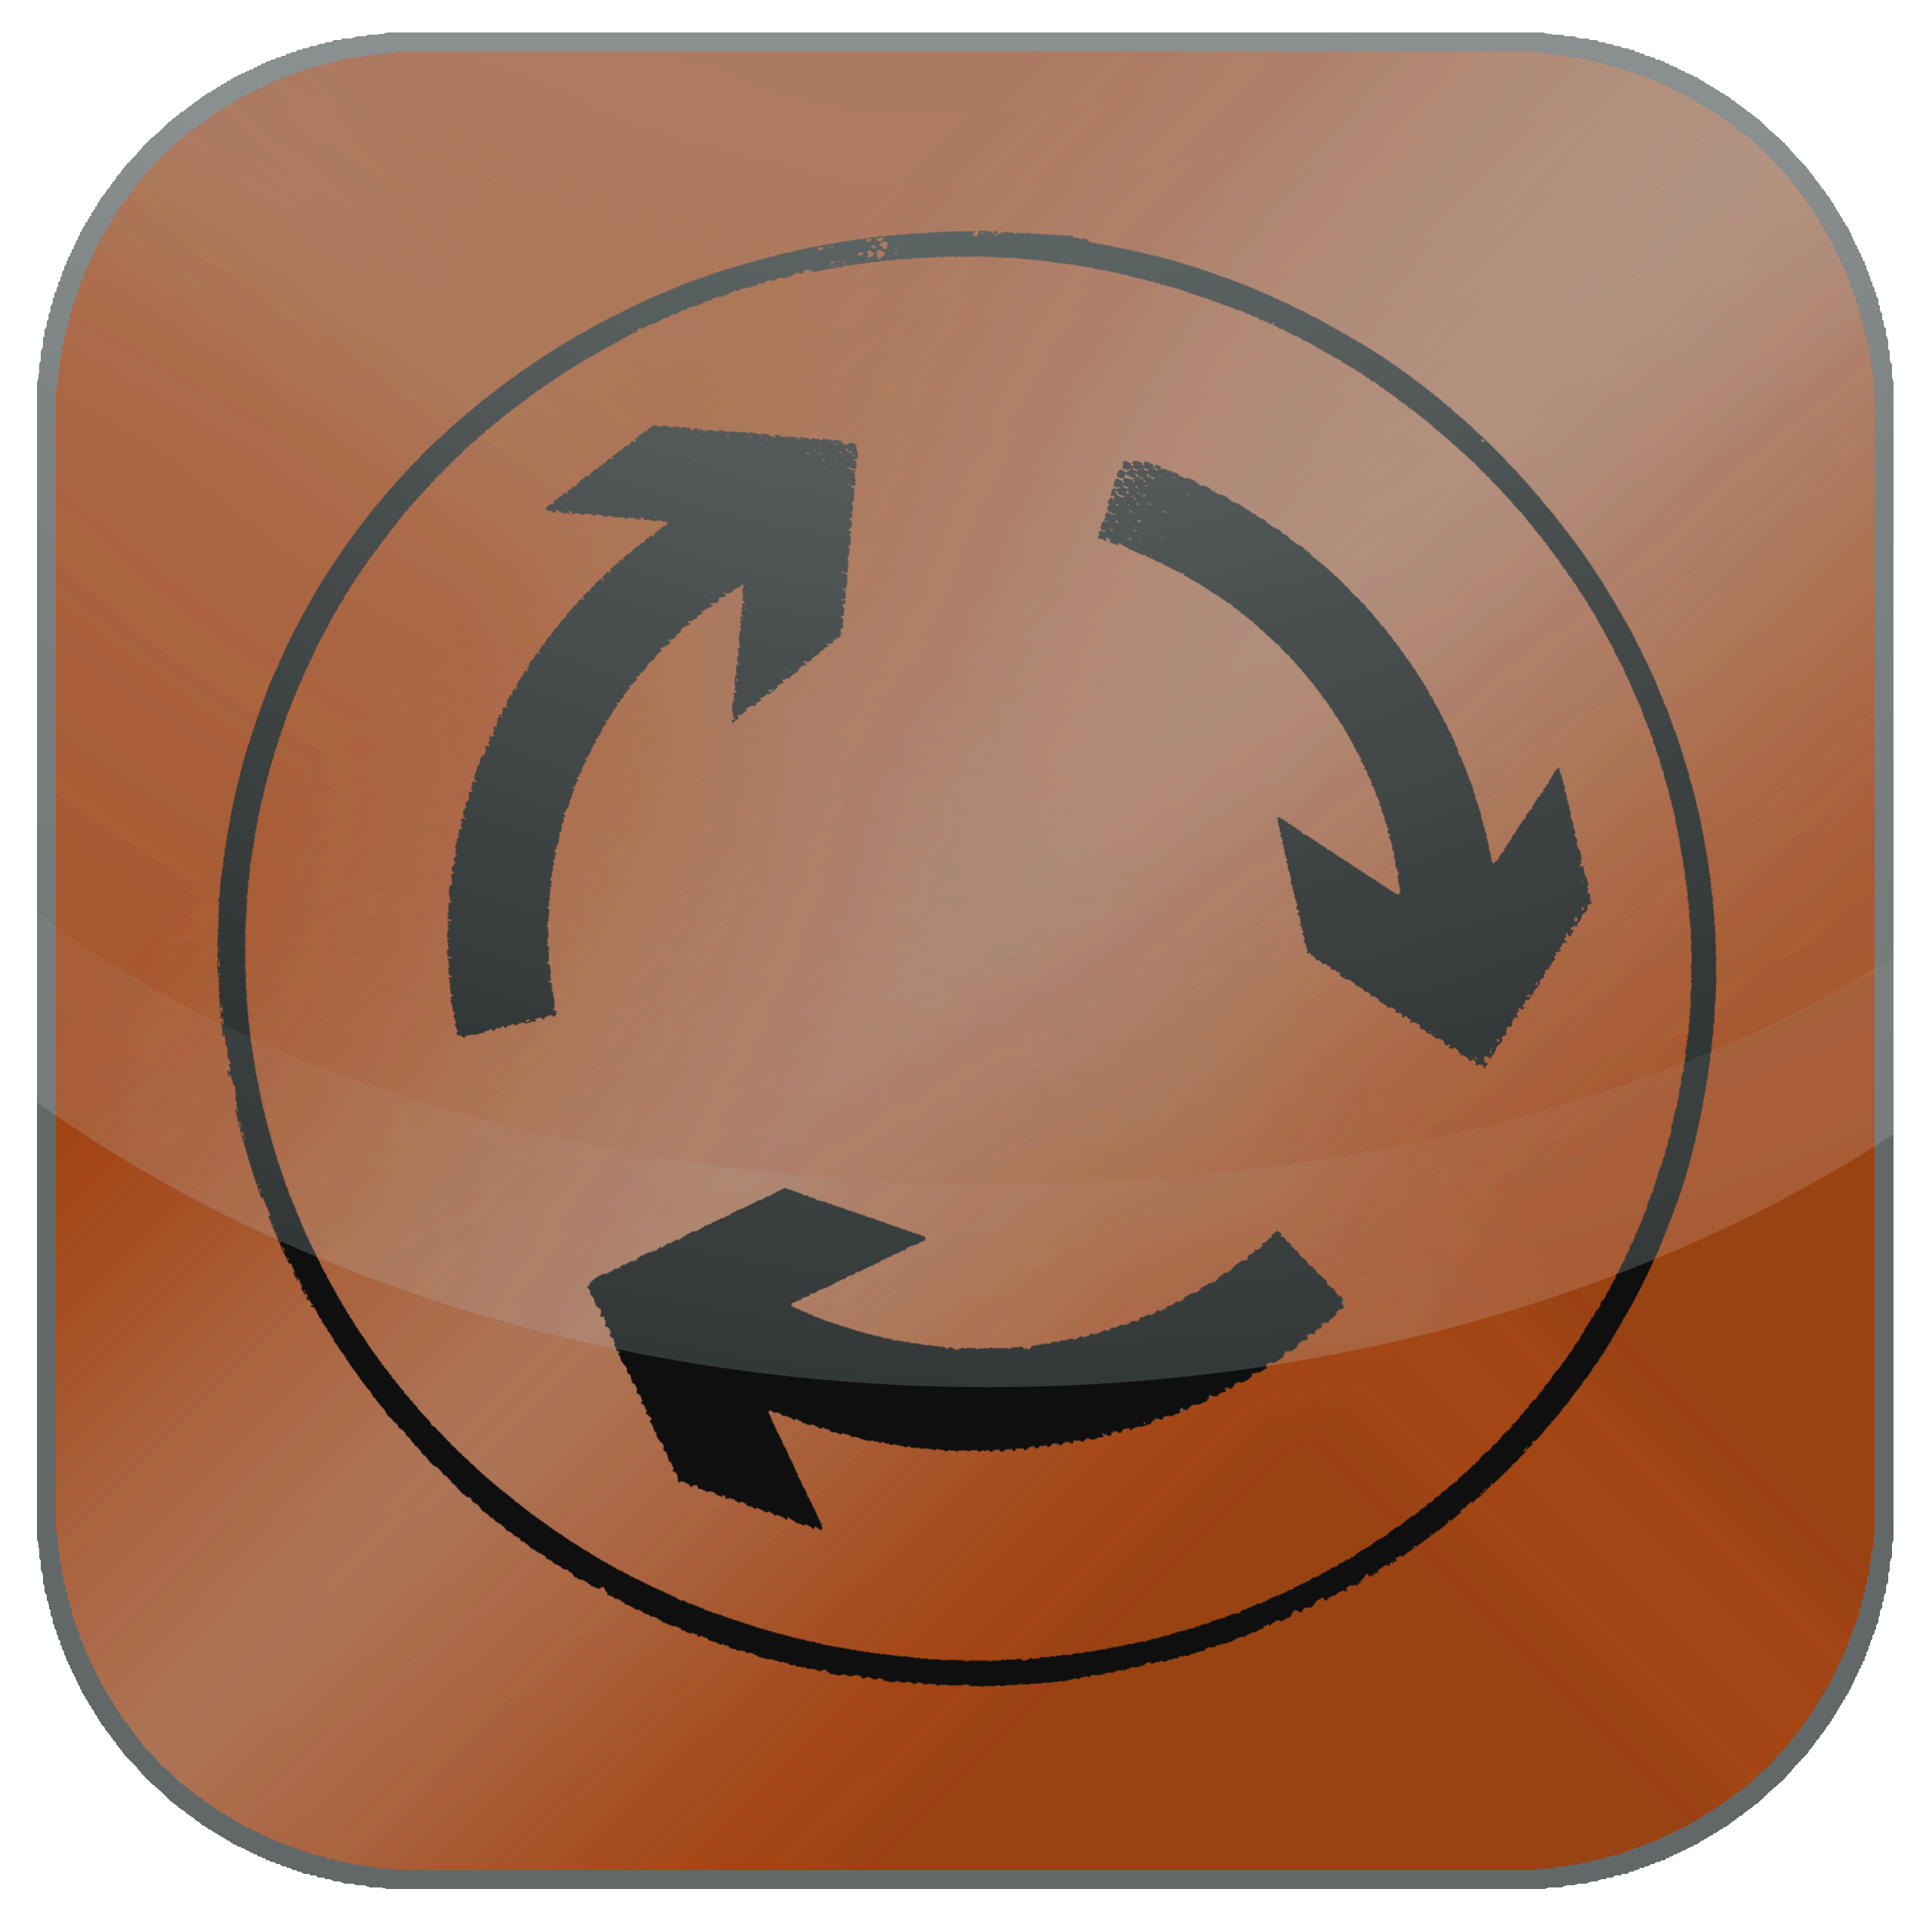 knowledge cycle icon - arrows